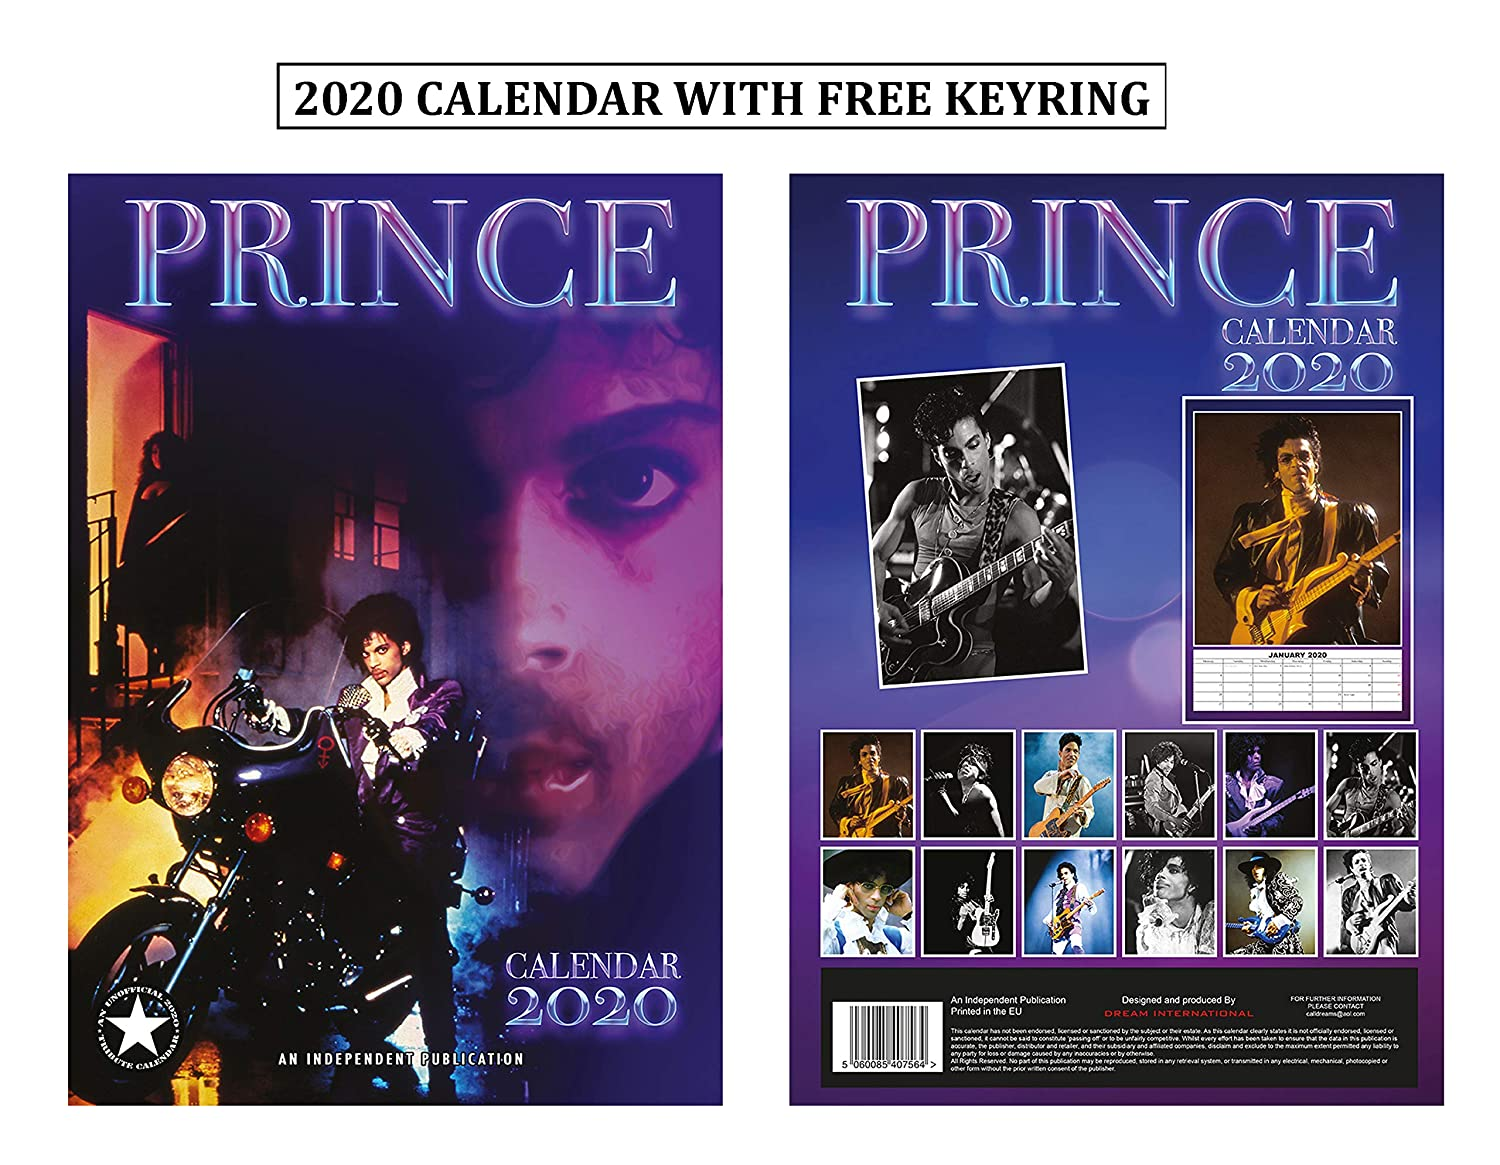 Prince Calendar 2020 Amazon.: Prince Calendar 2020 + Prince Keychain : Office Products